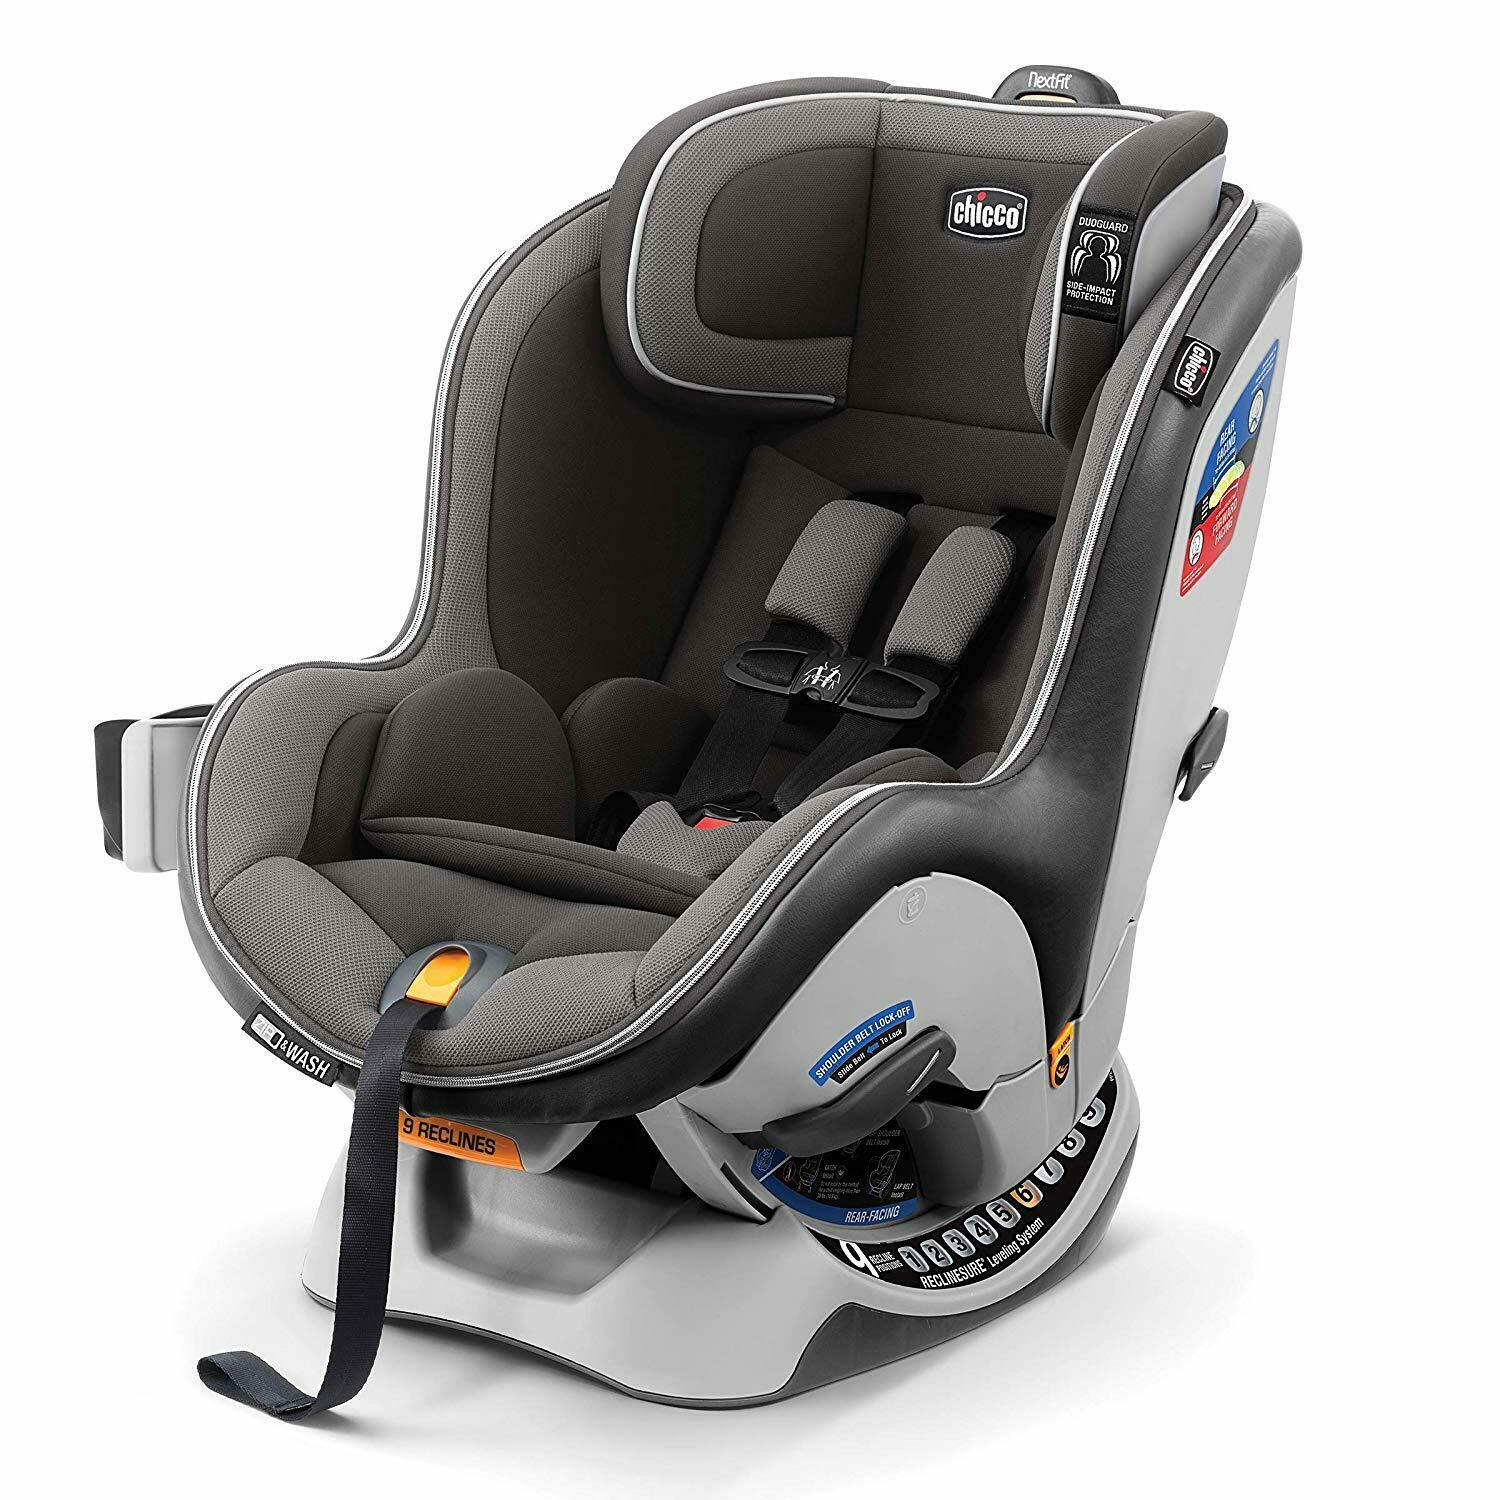 New Chicco NextFit Zip Convertible Car Seat in Nebulous